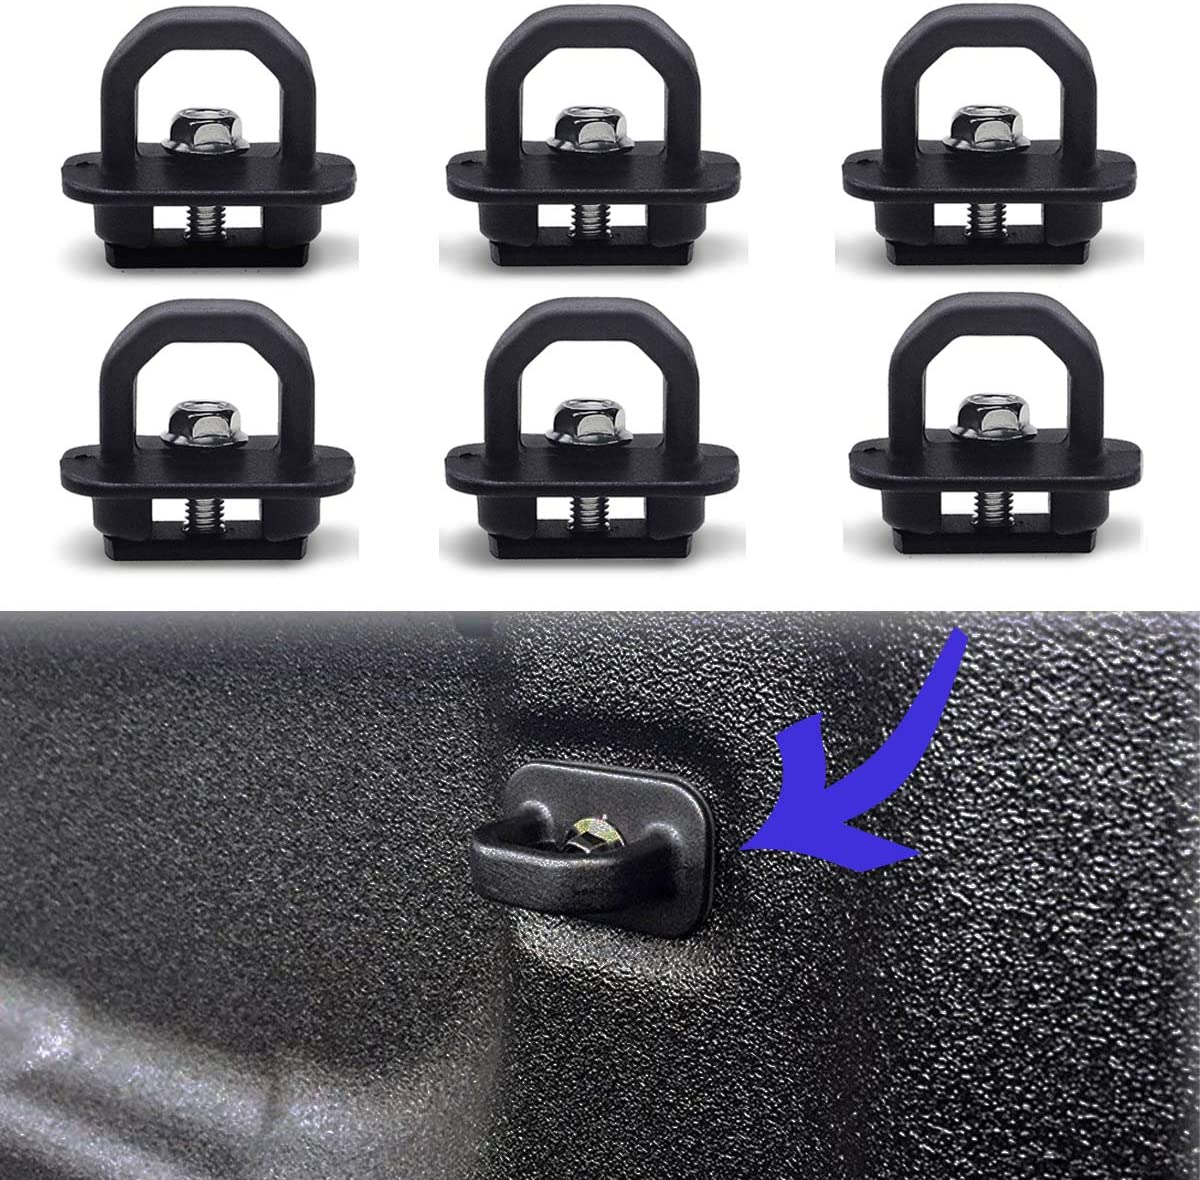 6-Pack MOEBULB Tie Down Anchor Truck Bed Cargo Side Wall Hook Rings Compatible for 2007-2018 Chevy Silverdo//GMC Sierra 2015-2018 Chevy Chevrolet Colorado//GMC Canyon